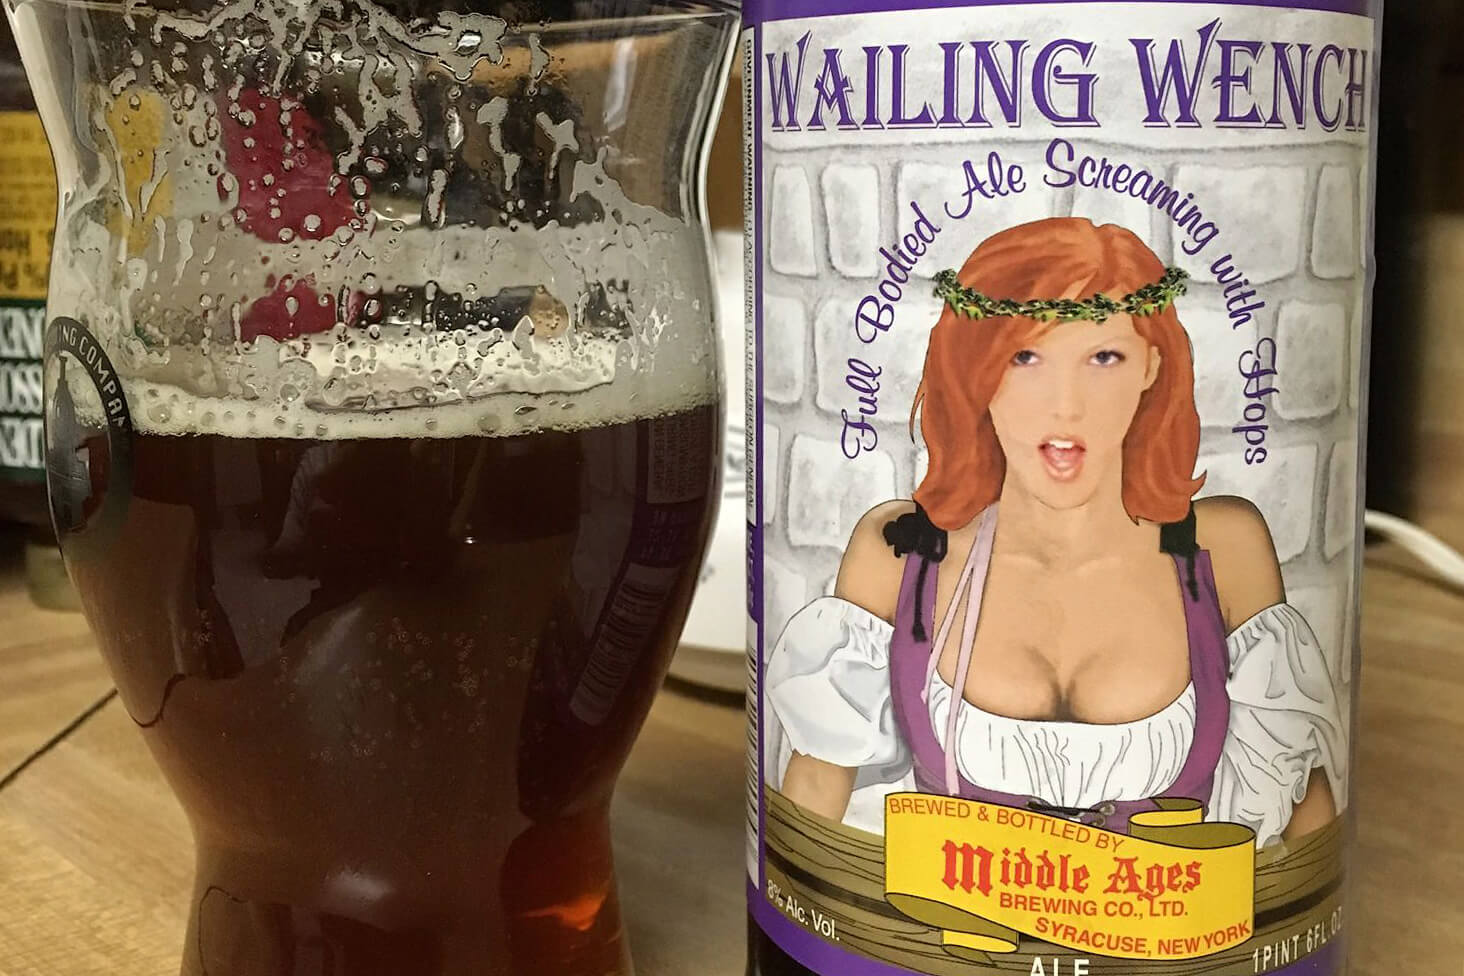 Middle Ages — Wailing Wench